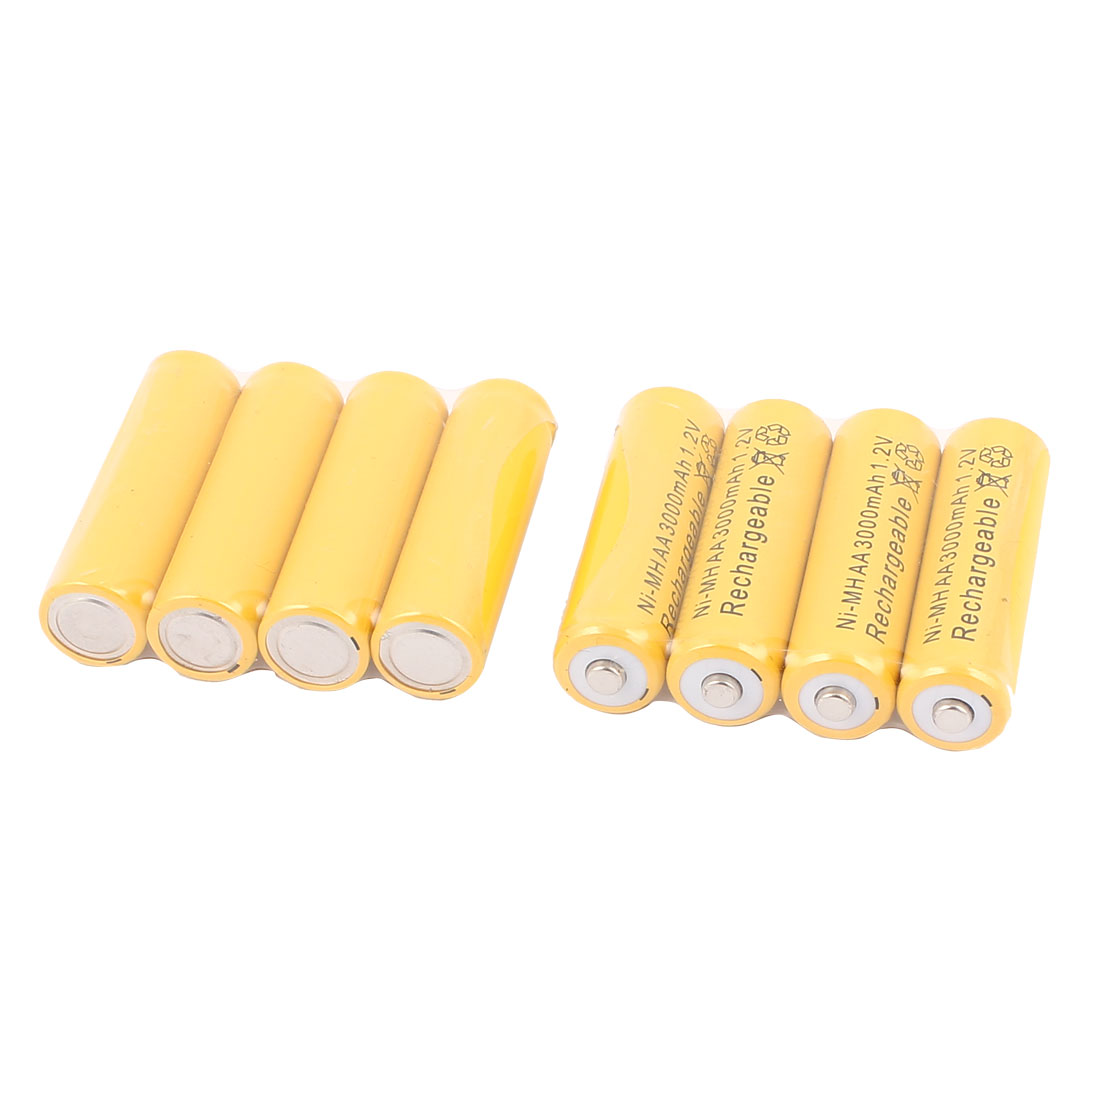 Unique Bargains 8 Pcs Ni-MH AA 3000mAh 1.2V Rechargeable ...